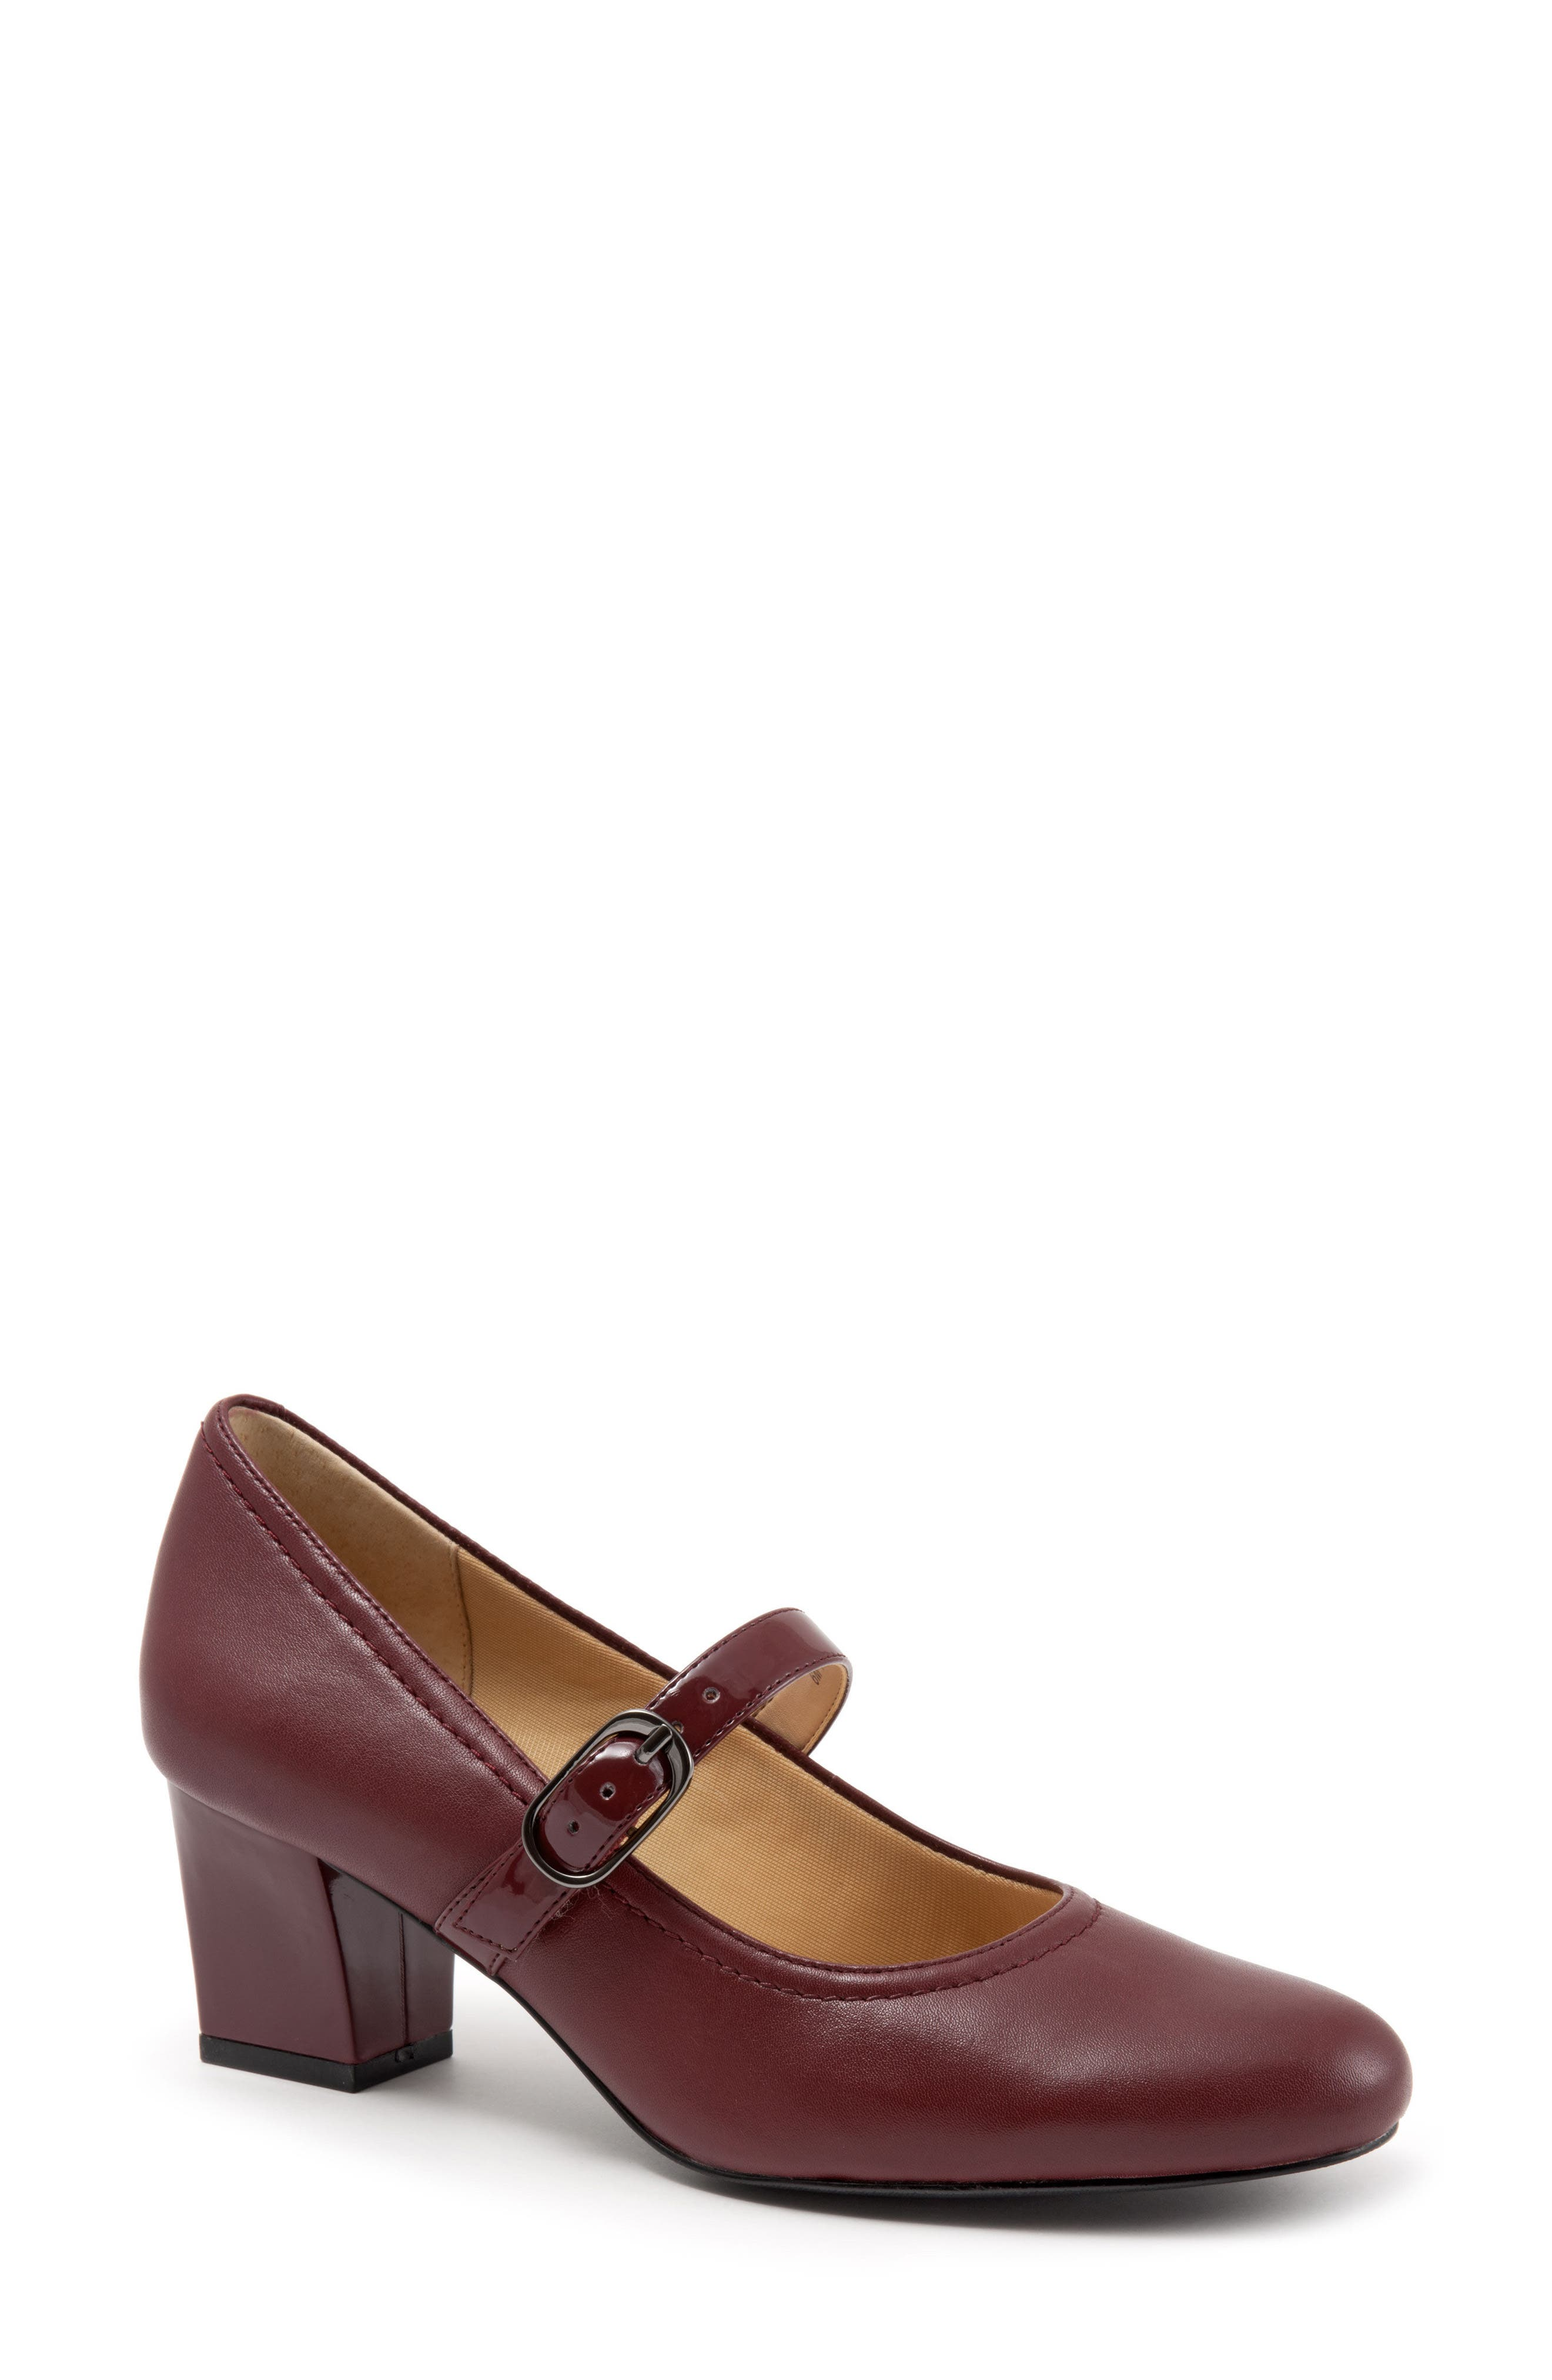 Alternate Image 1 Selected - Trotters 'Candice' Mary Jane Pump (Women)